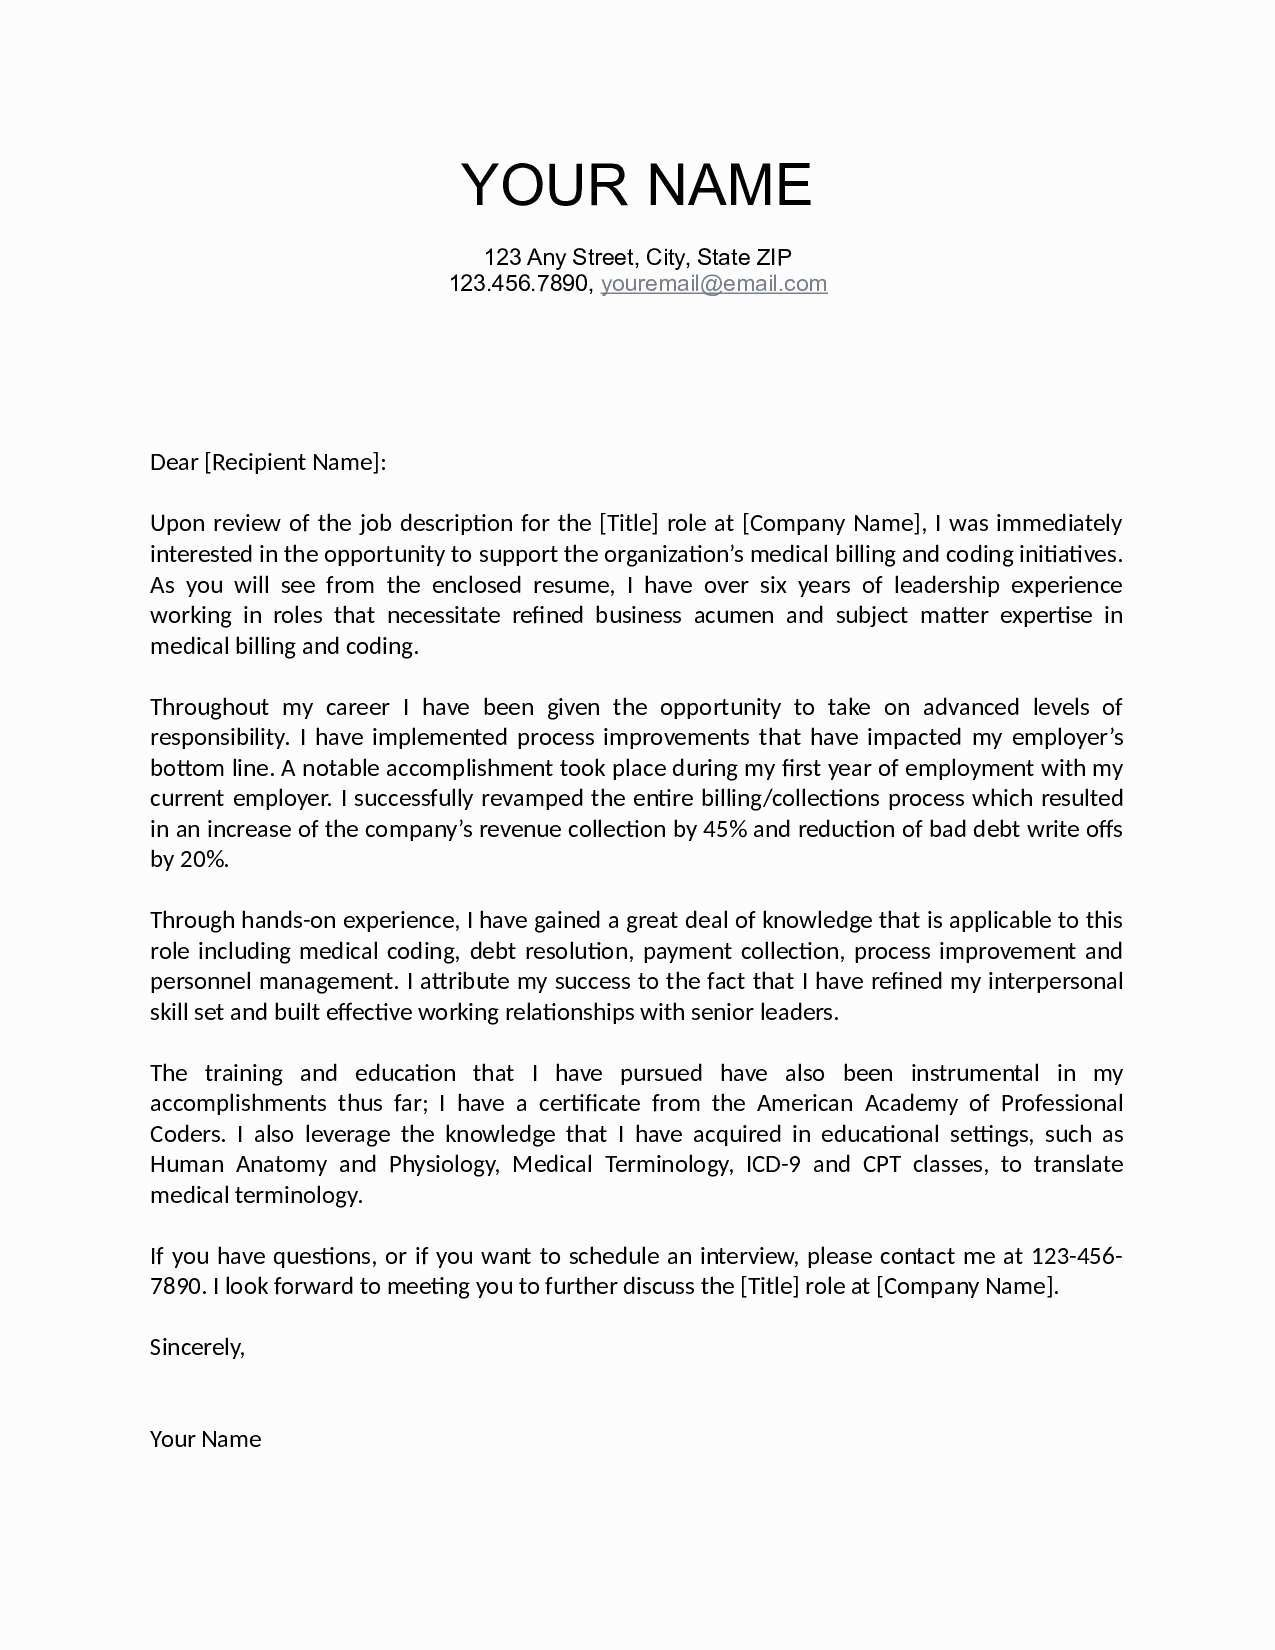 Cover Letter Template Australia - 18 Inspirational Sample Cover Letter for A Resume